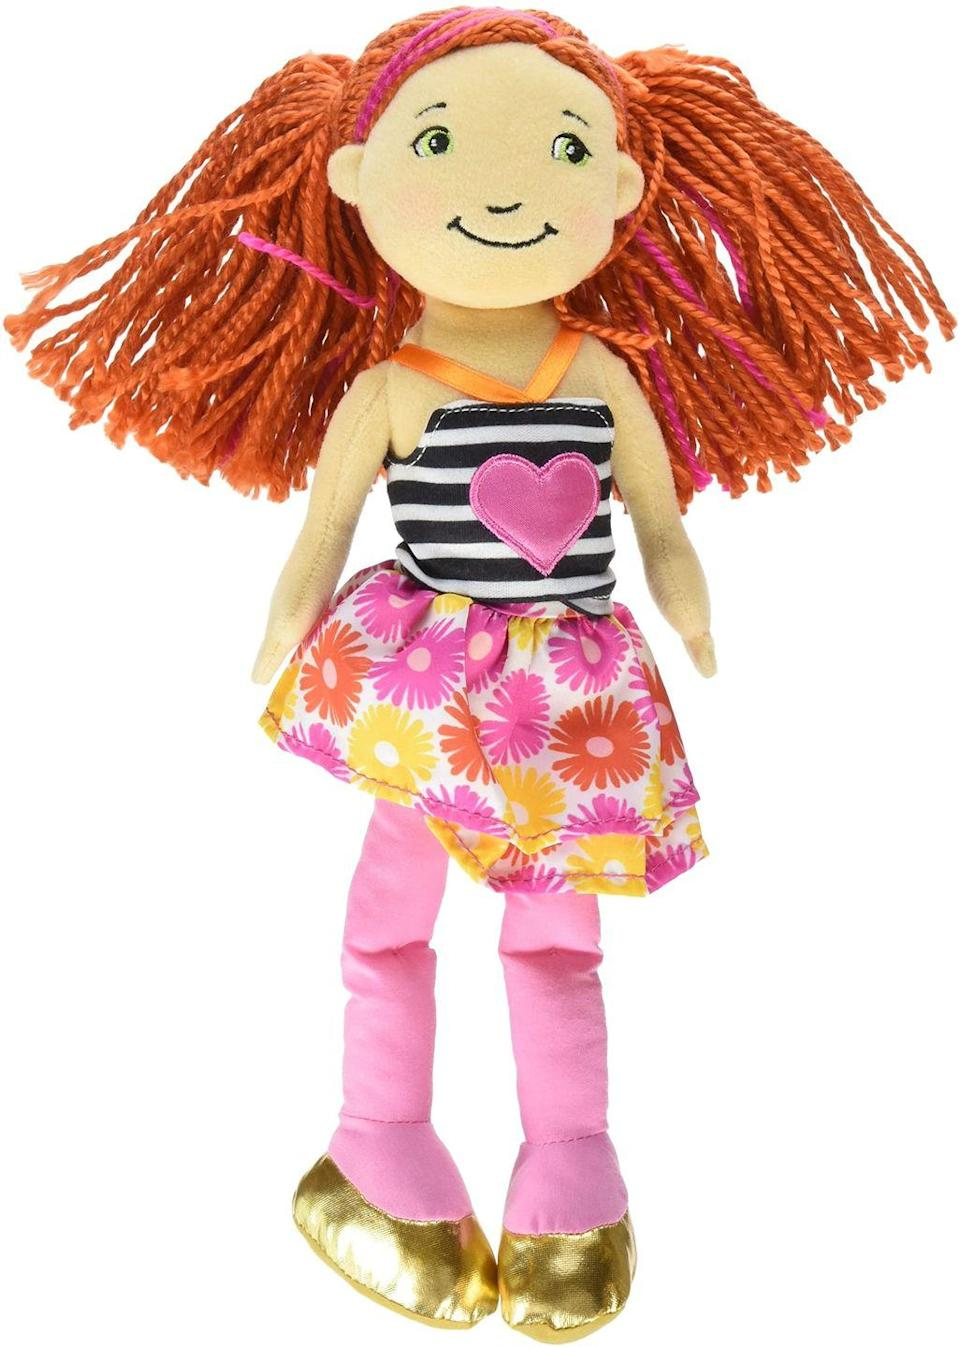 "<p>The more conservative doll of the bunch originally retailed in Target stores for anywhere between $15 to $20. As of 2019, no new dolls are being made, so it's the perfect time to sell the ones you have hidden somewhere in your attic. <a href=""https://www.ebay.com/itm/groovy-girls-dolls/184240886231?hash=item2ae59cd1d7:g:3RkAAOSwRHleih9s"" rel=""nofollow noopener"" target=""_blank"" data-ylk=""slk:A set of five"" class=""link rapid-noclick-resp"">A set of five</a> goes for over $100. </p>"